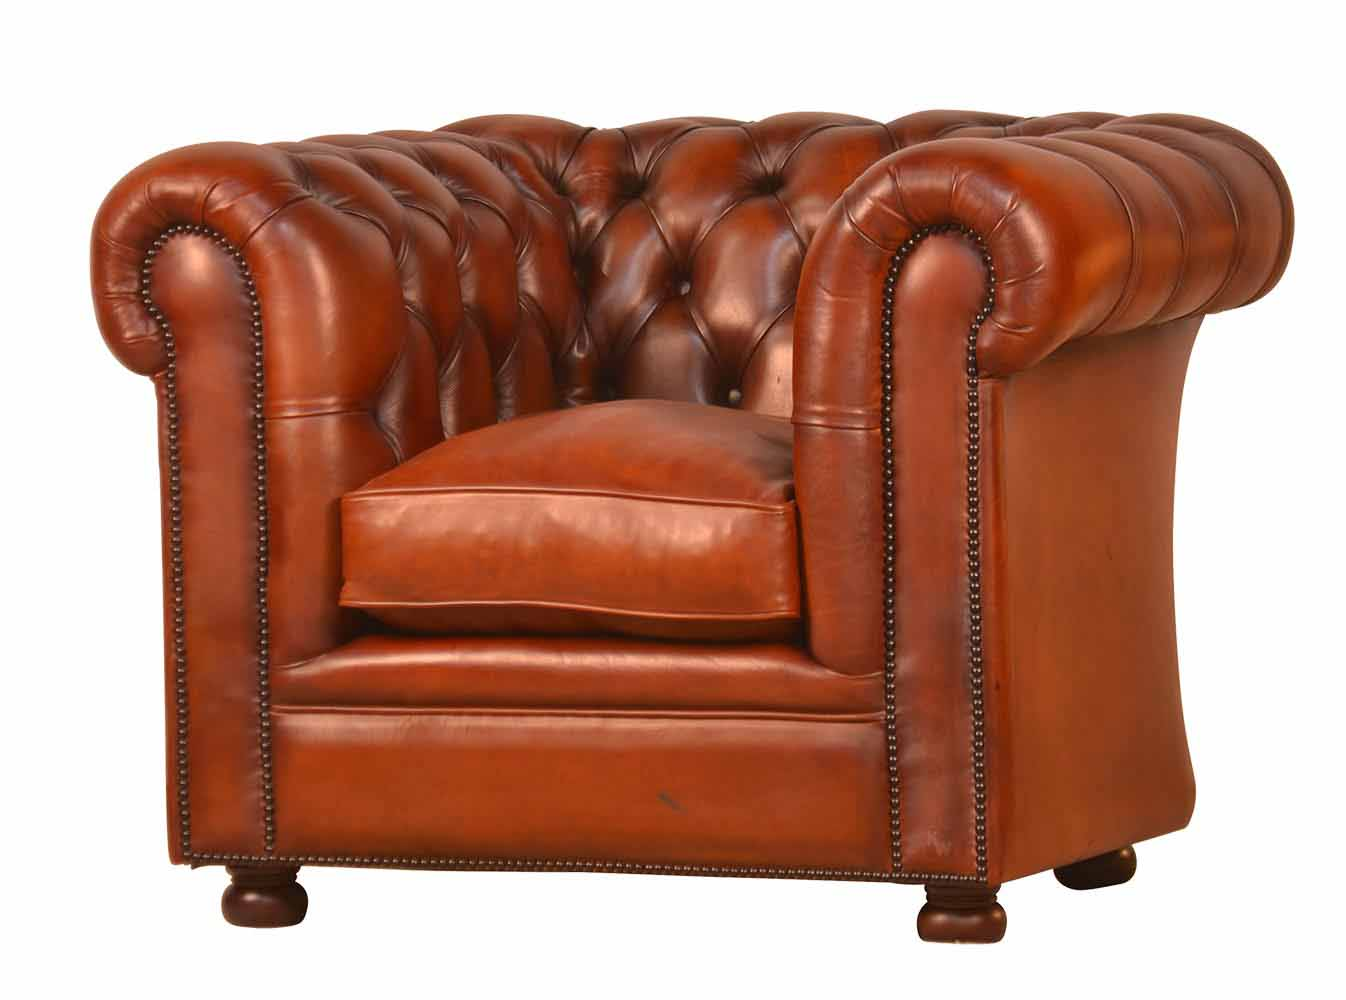 Chesterfield sessel lederm bel von kai for Sessel ohren